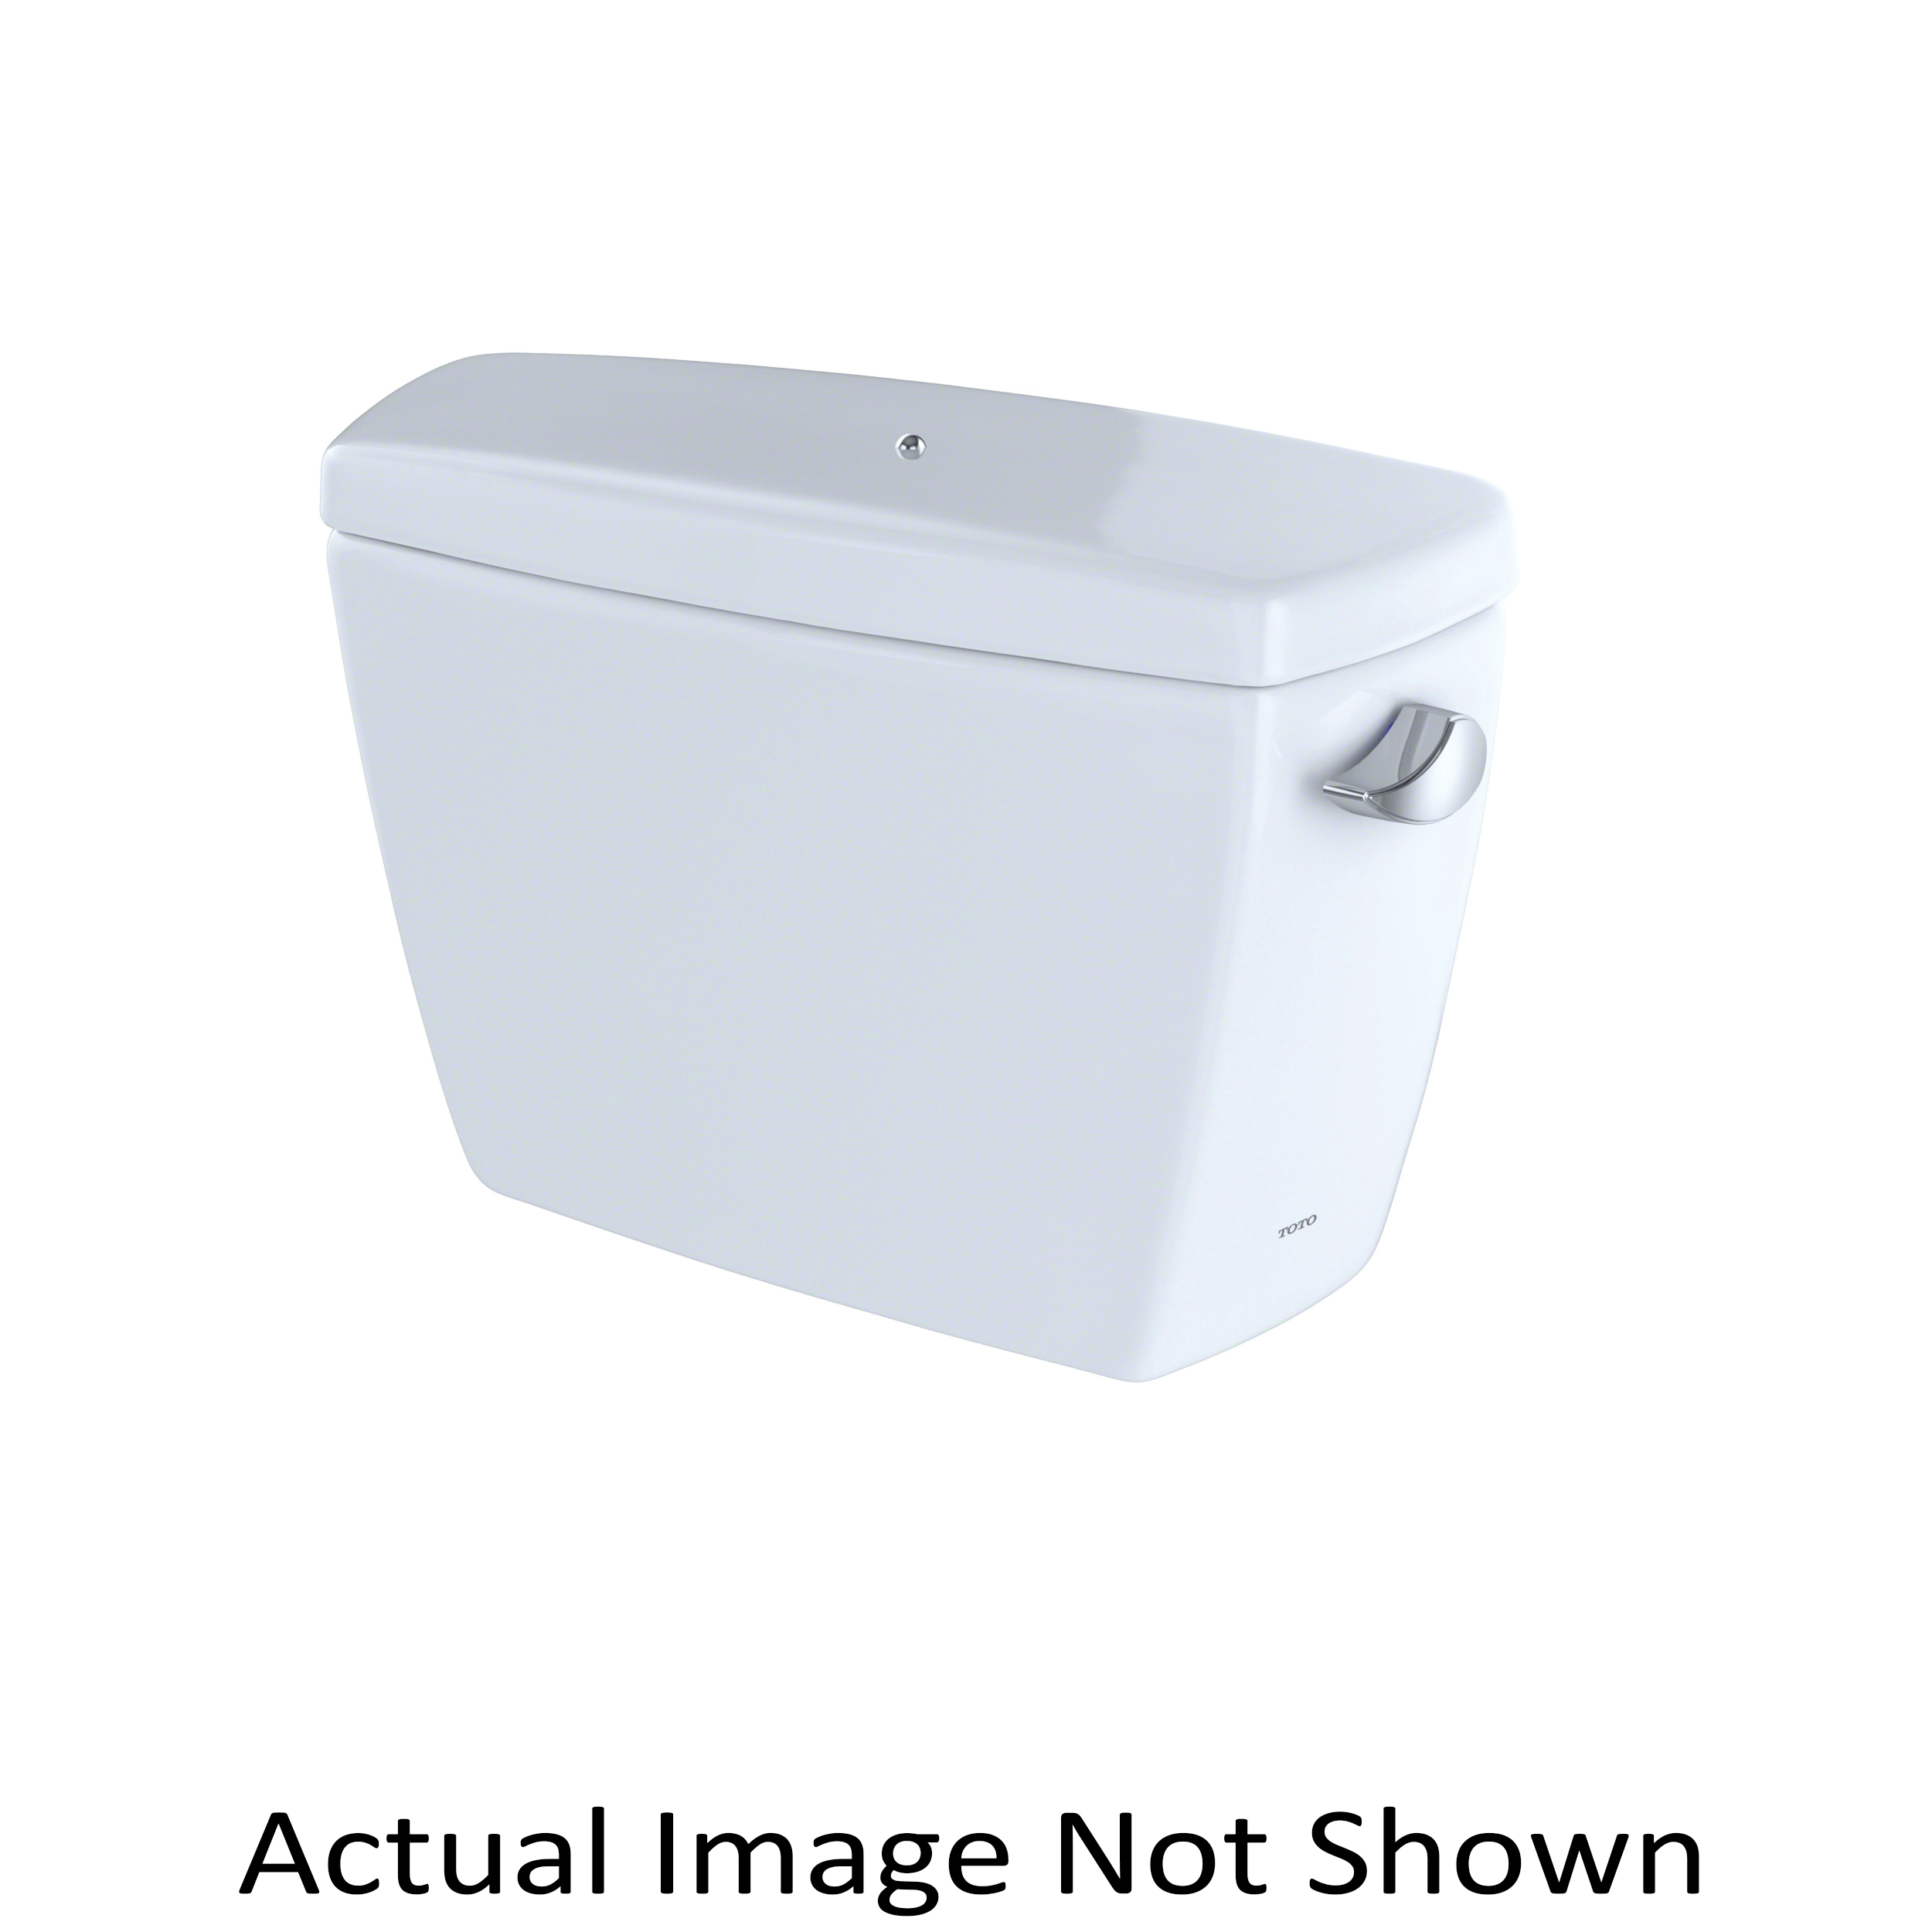 Toto® ST743SRB#01 Tank and Cover With Bolt Down Lid, 1.6 gpf, Right Hand Lever Flush Handle, 3 in Flush, Cotton, Import